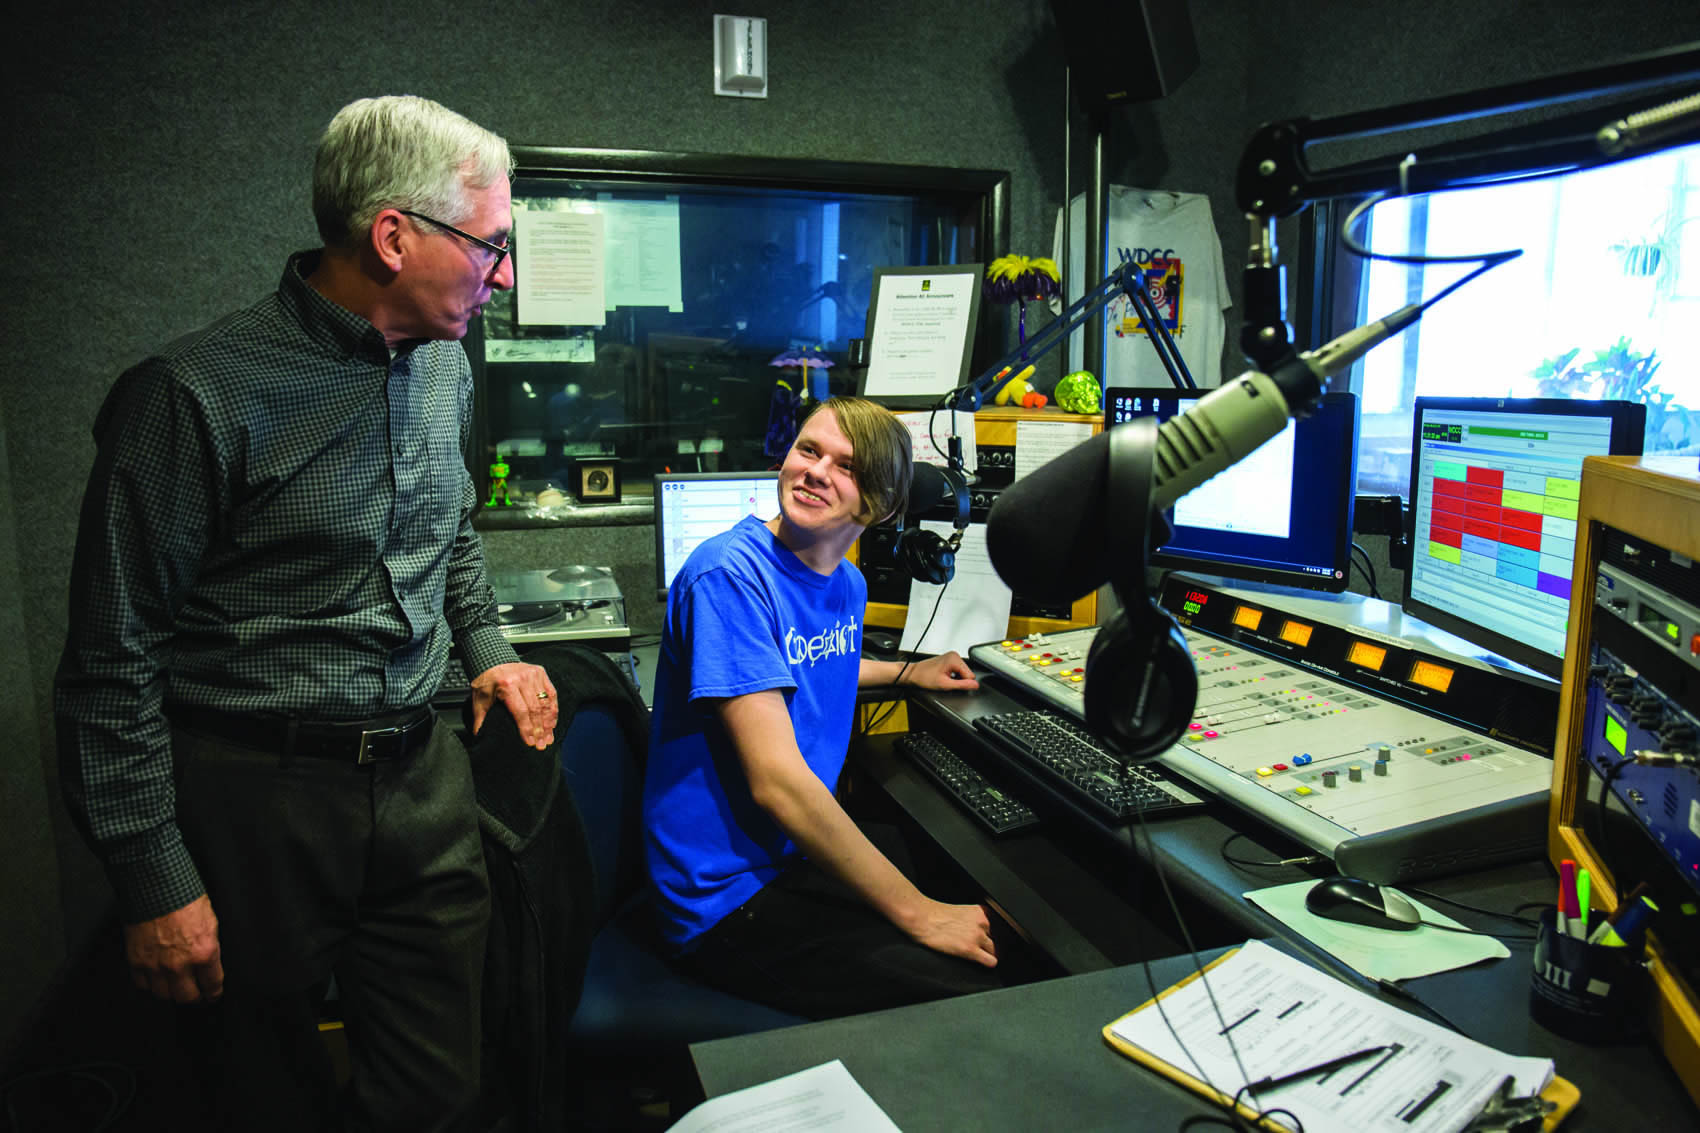 Click to enlarge,  Matt Monarca, The Sanford Herald. Bill Freeman, left, the director of-media technologies at Central Carolina Community College in Sanford, chats with Harrison Riddle, 16, Monday morning during Riddle's time on air at the college's radio station. Freeman oversees operations at CCCC's two radio stations and two television channels.